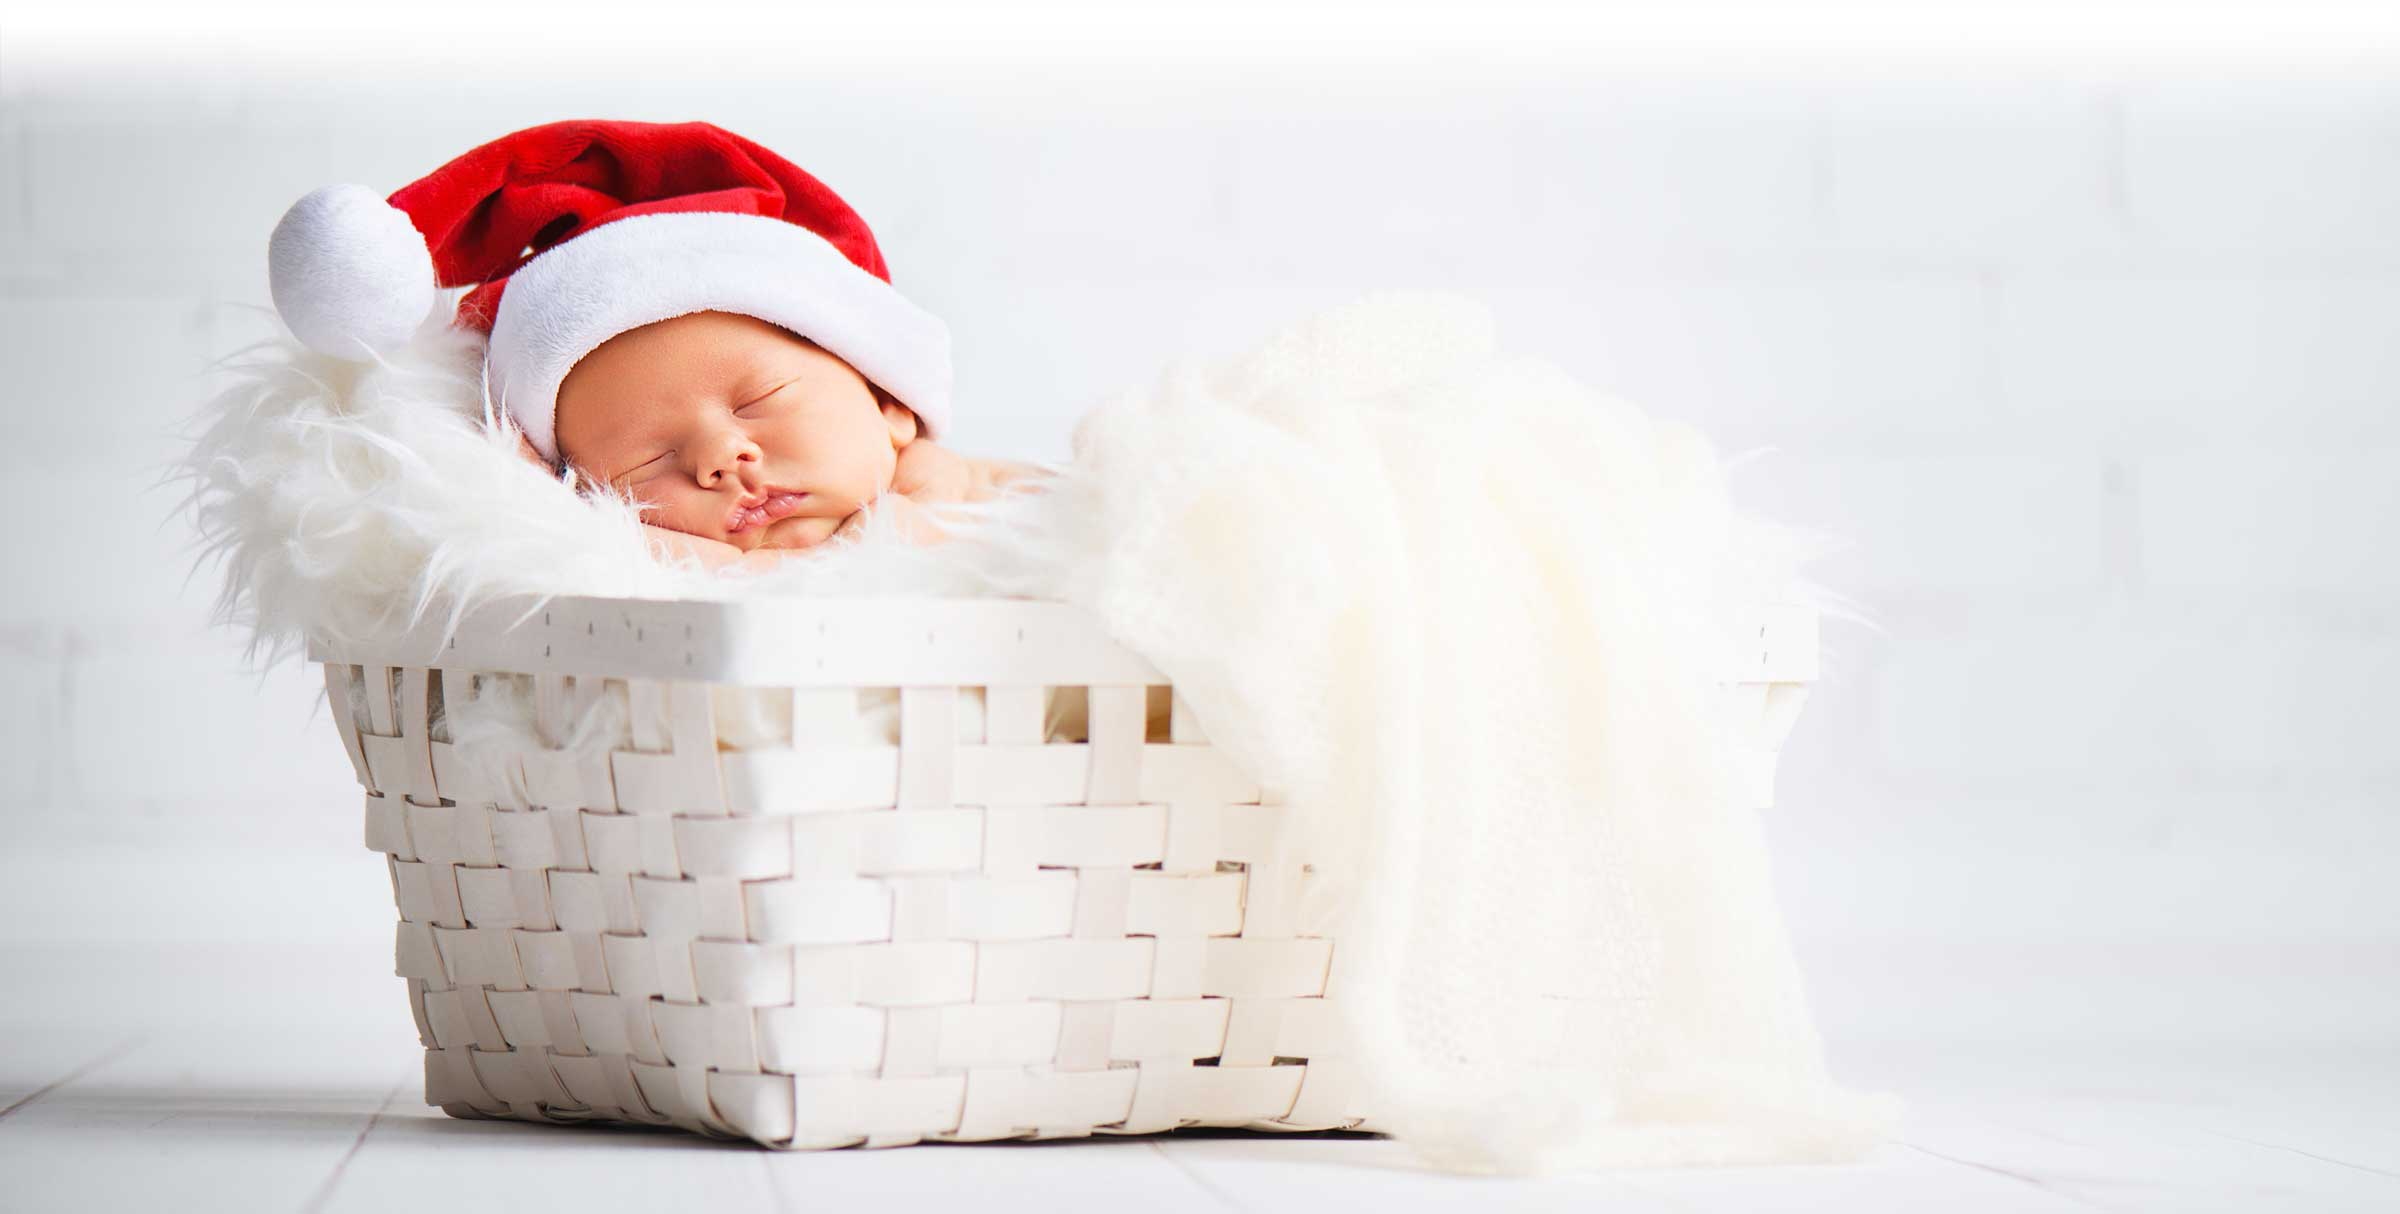 Baby with Santa hat on asleep in basket with blanket